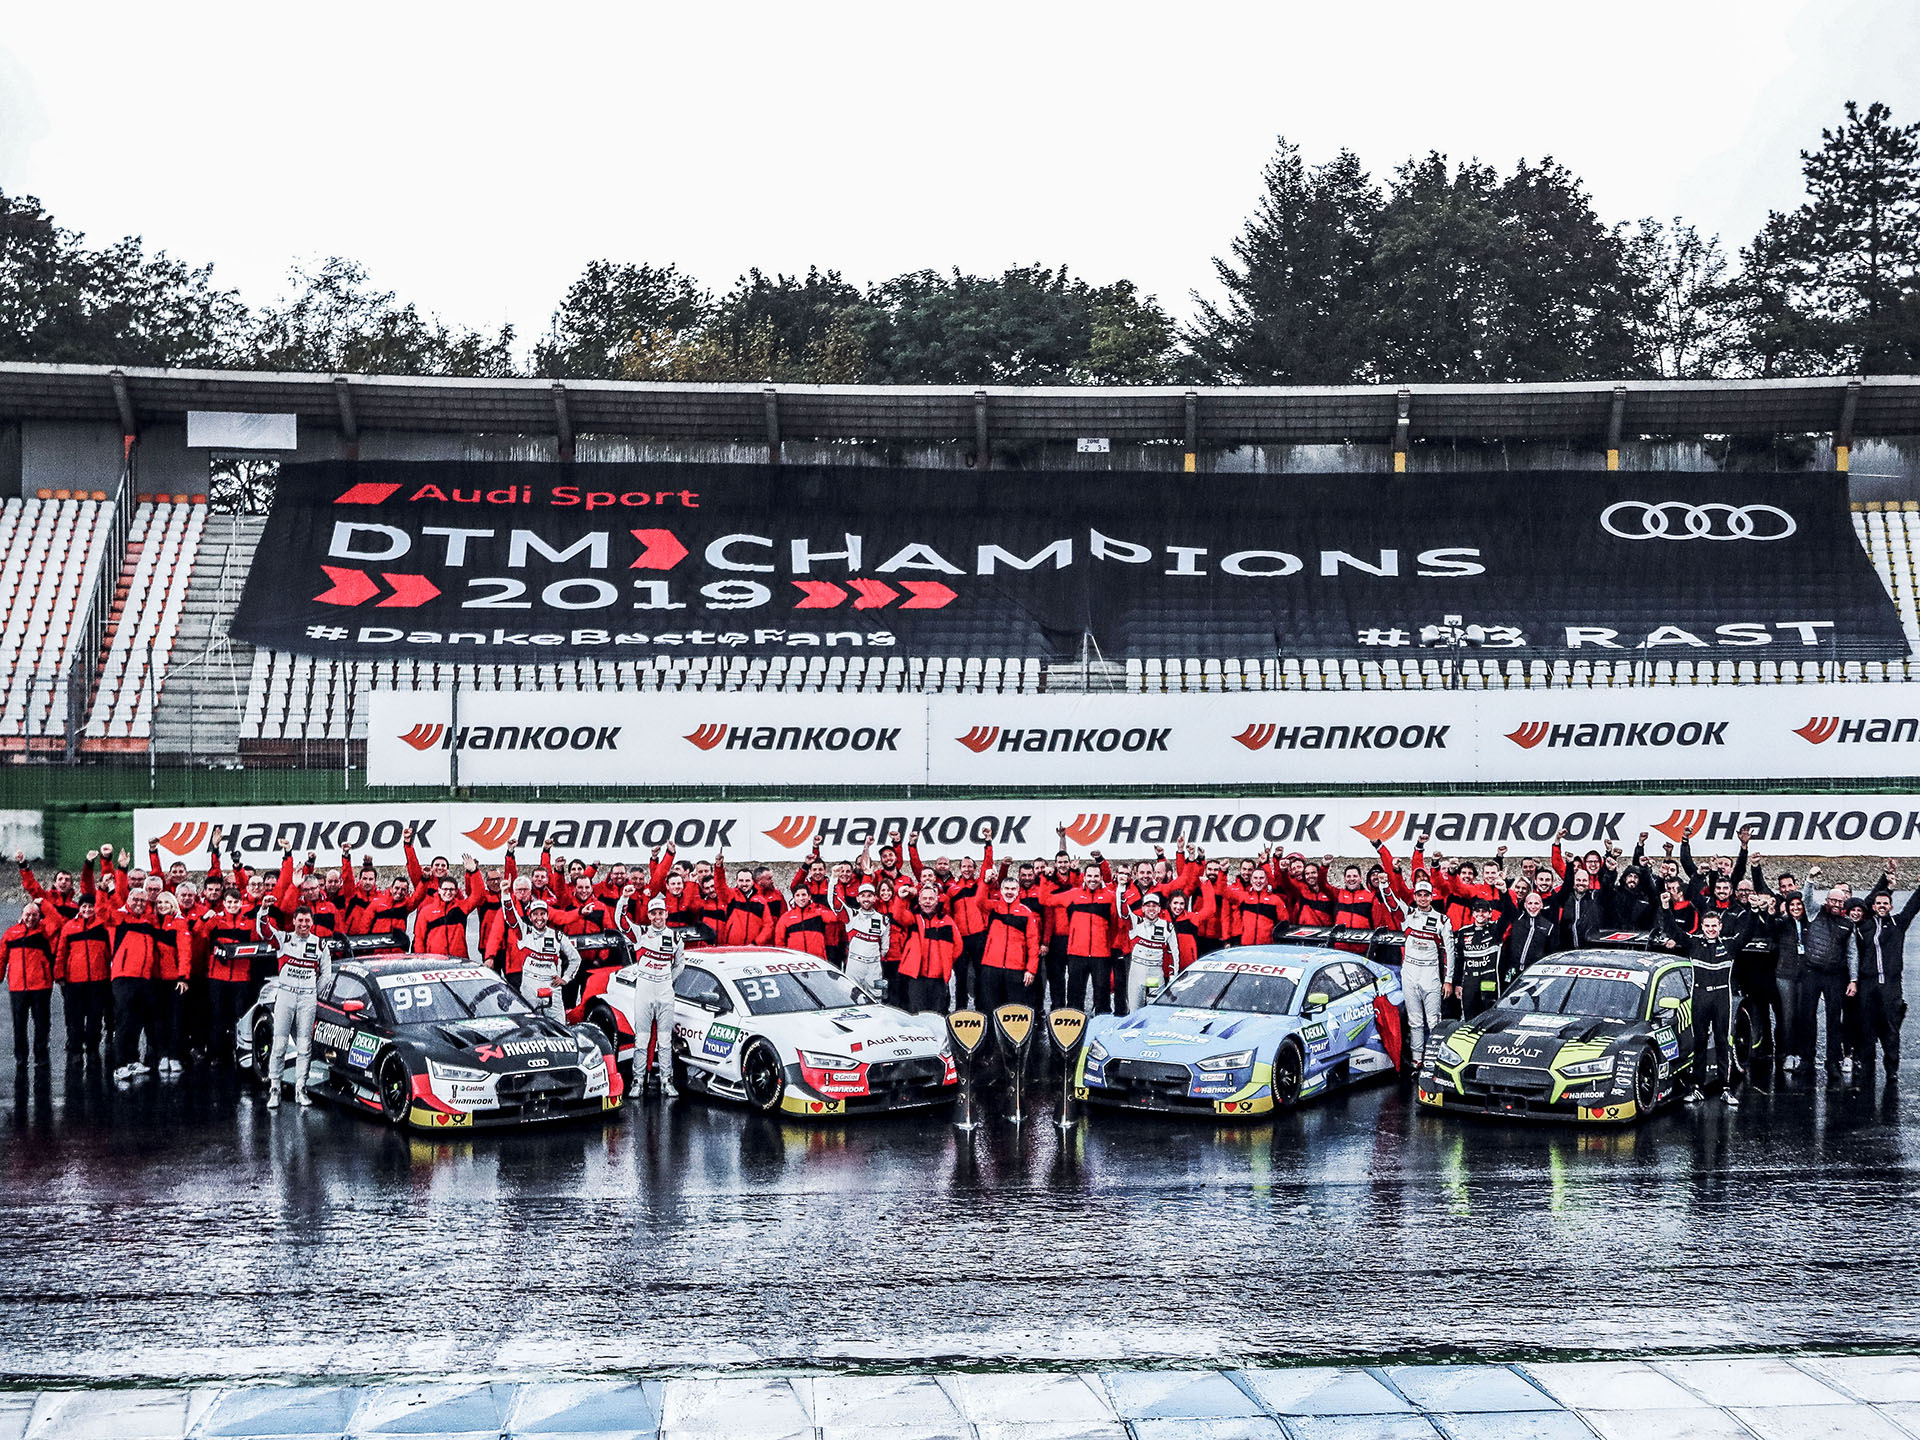 Audi team and four Audi RS 5 DTM cars